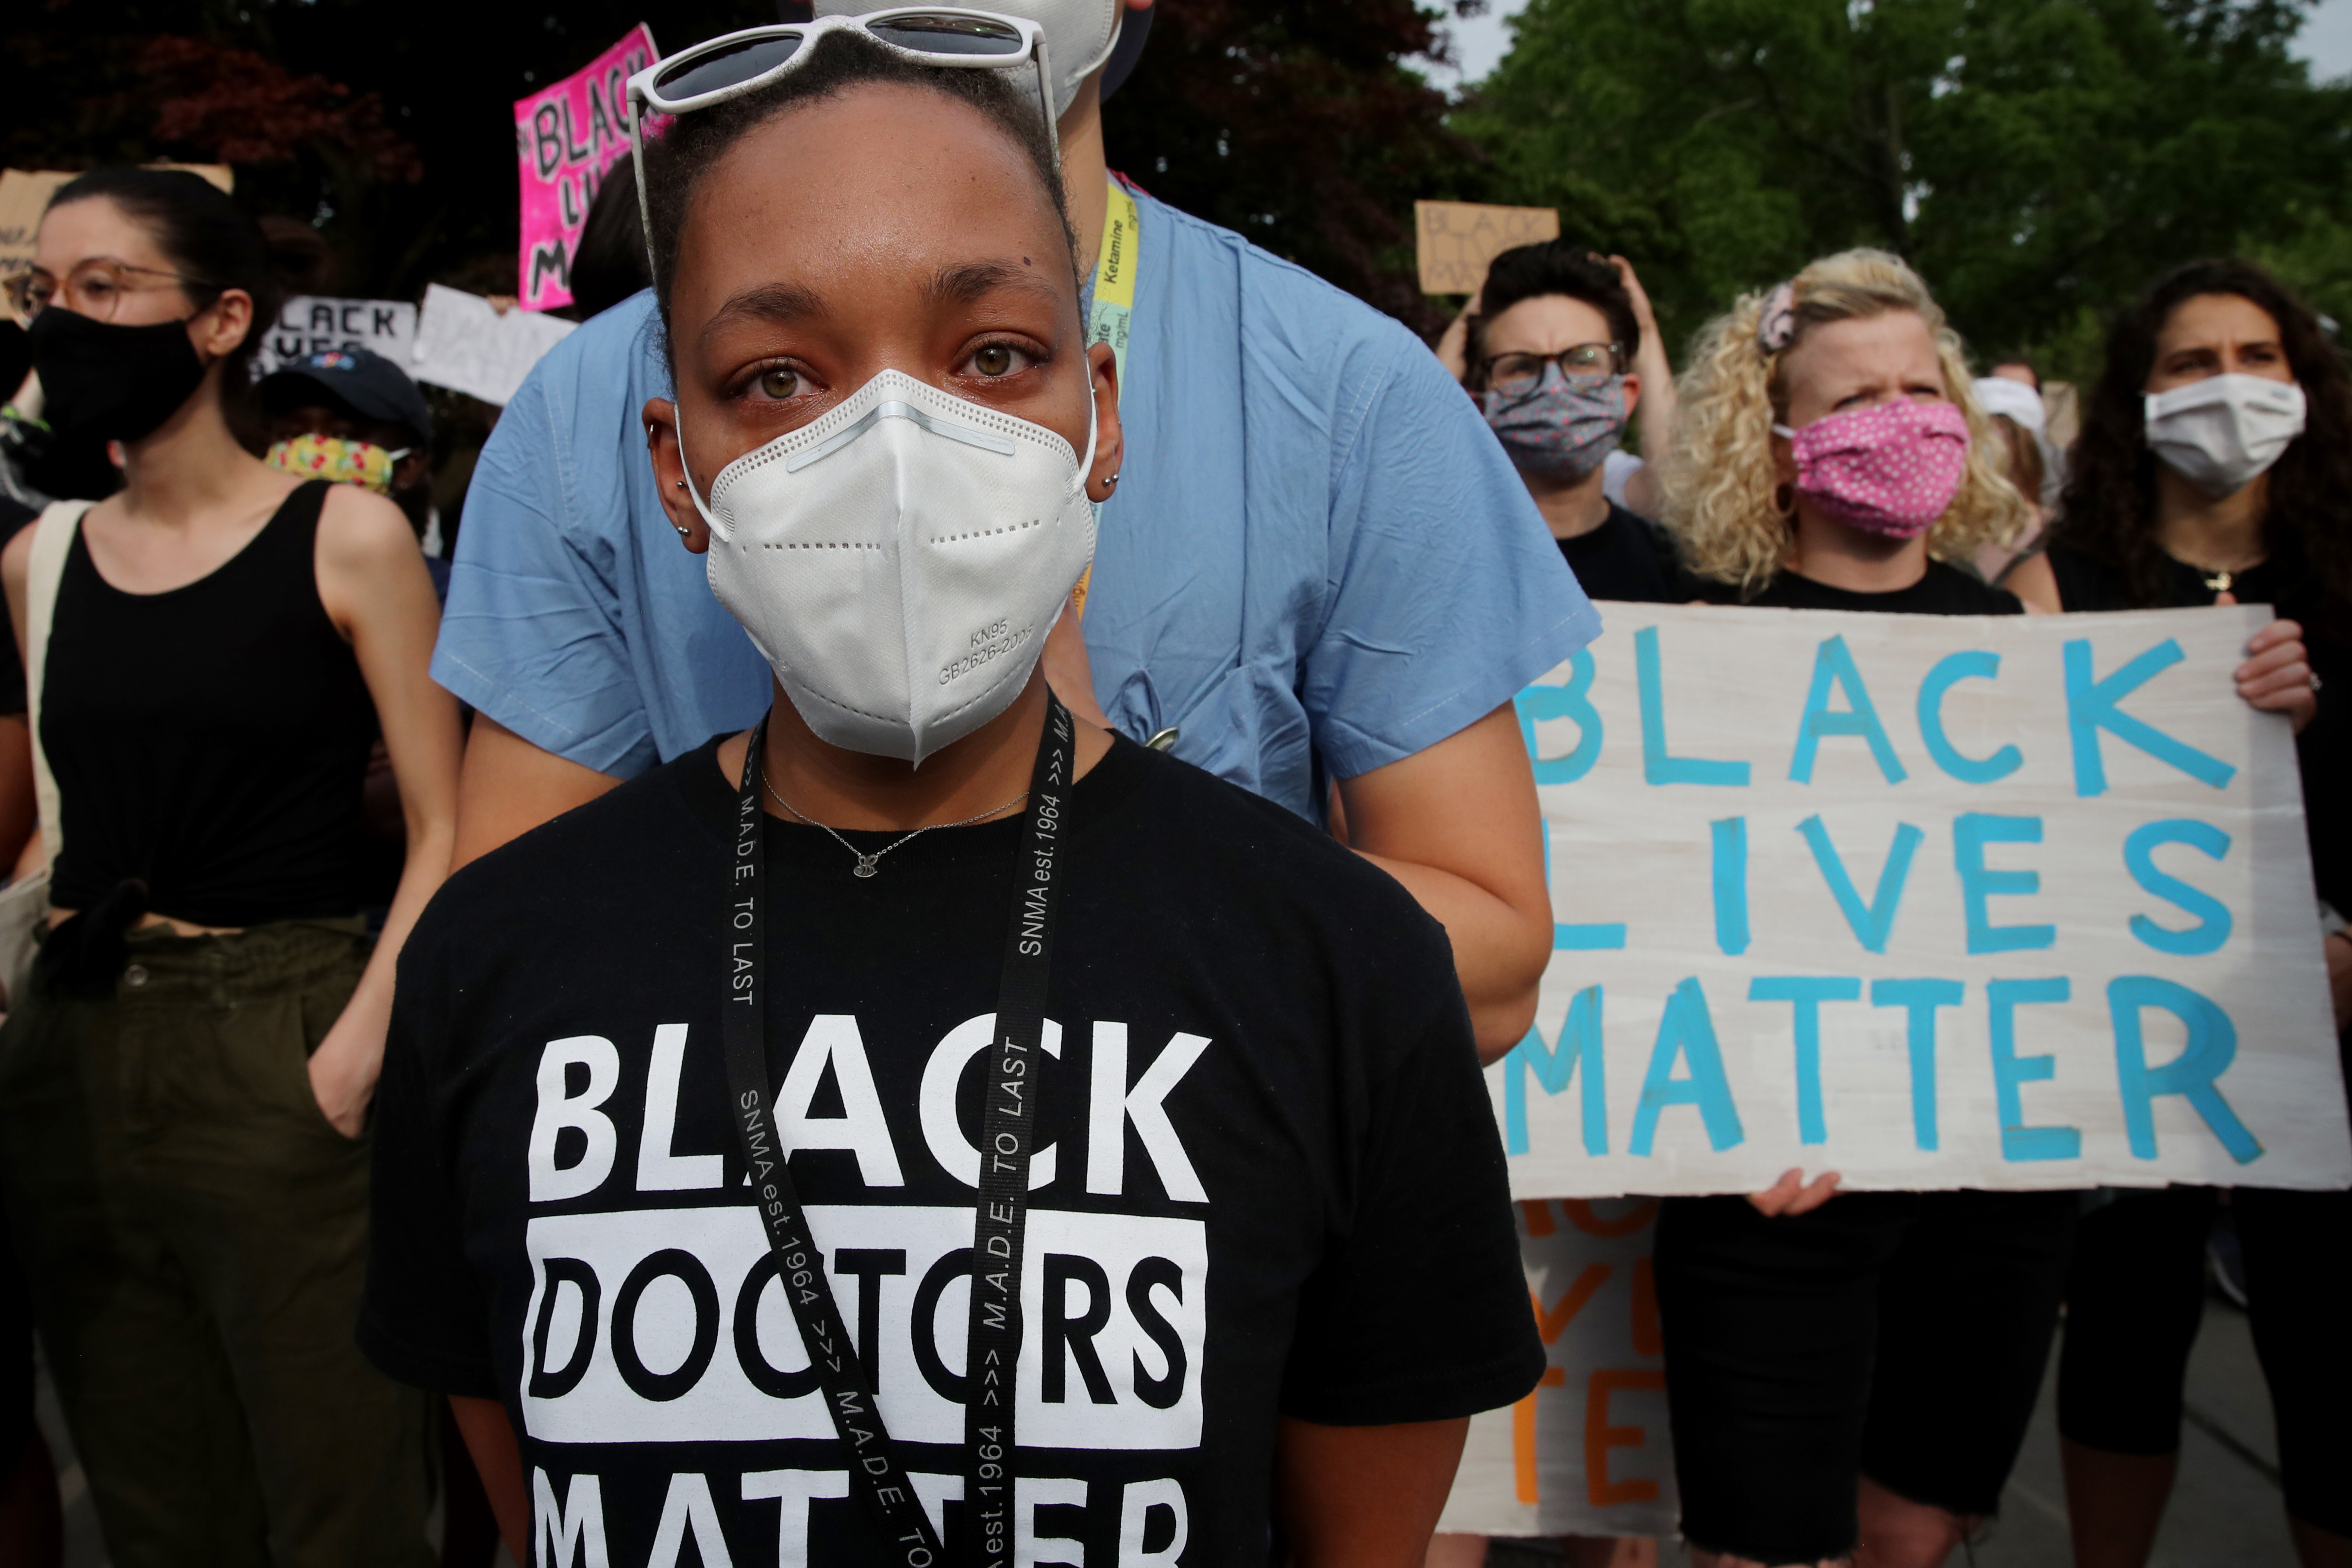 Dr. Alaina Geary during a vigil in Boston on June 4, 2020, in support of racial justice after the killing of George Floyd.